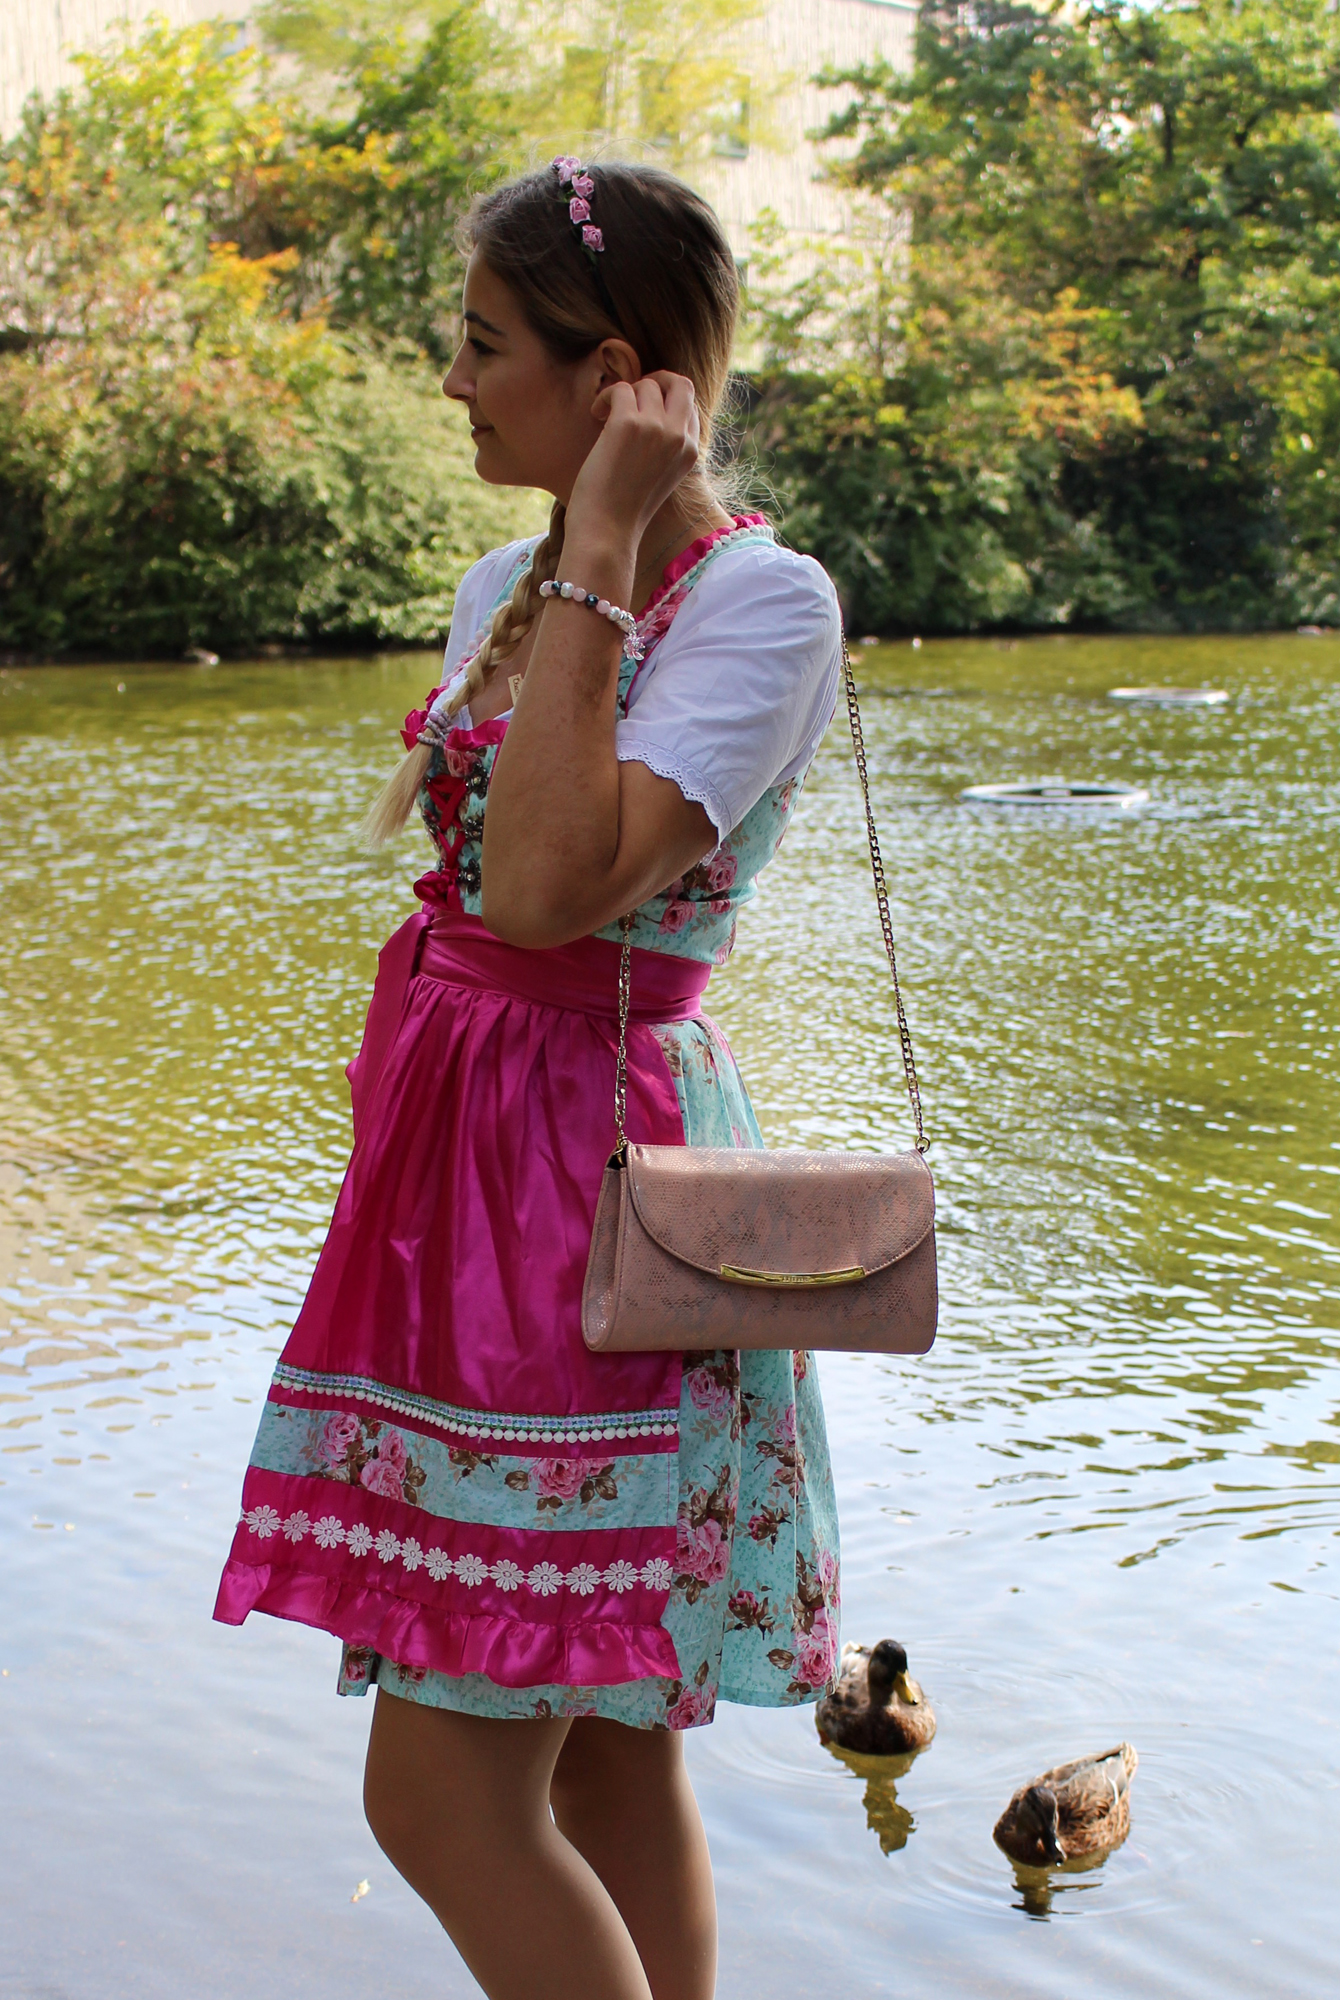 thomas-sabo-dirndl-schmuck-outfit-wiesn-oktoberfest-look-fleurrly-full-look-tanja.jpg